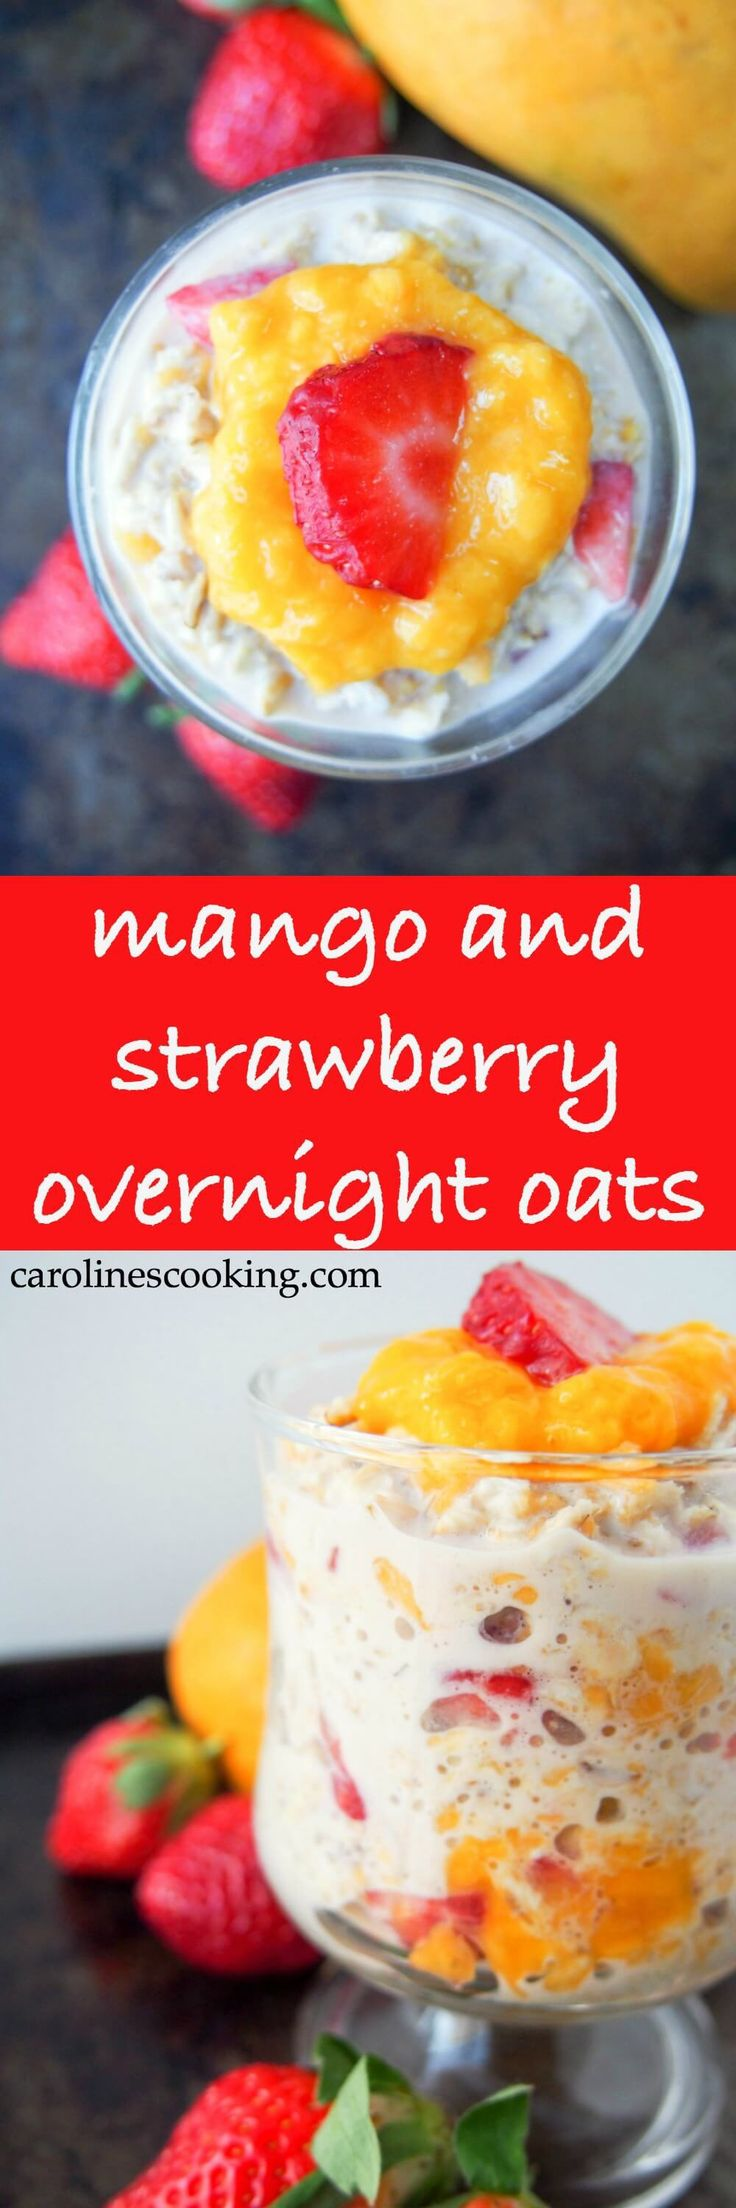 This mango and strawberry overnight oats is the perfect light breakfast for warmer weather. Deliciously smooth, creamy, fresh & fruity. And so easy to make!